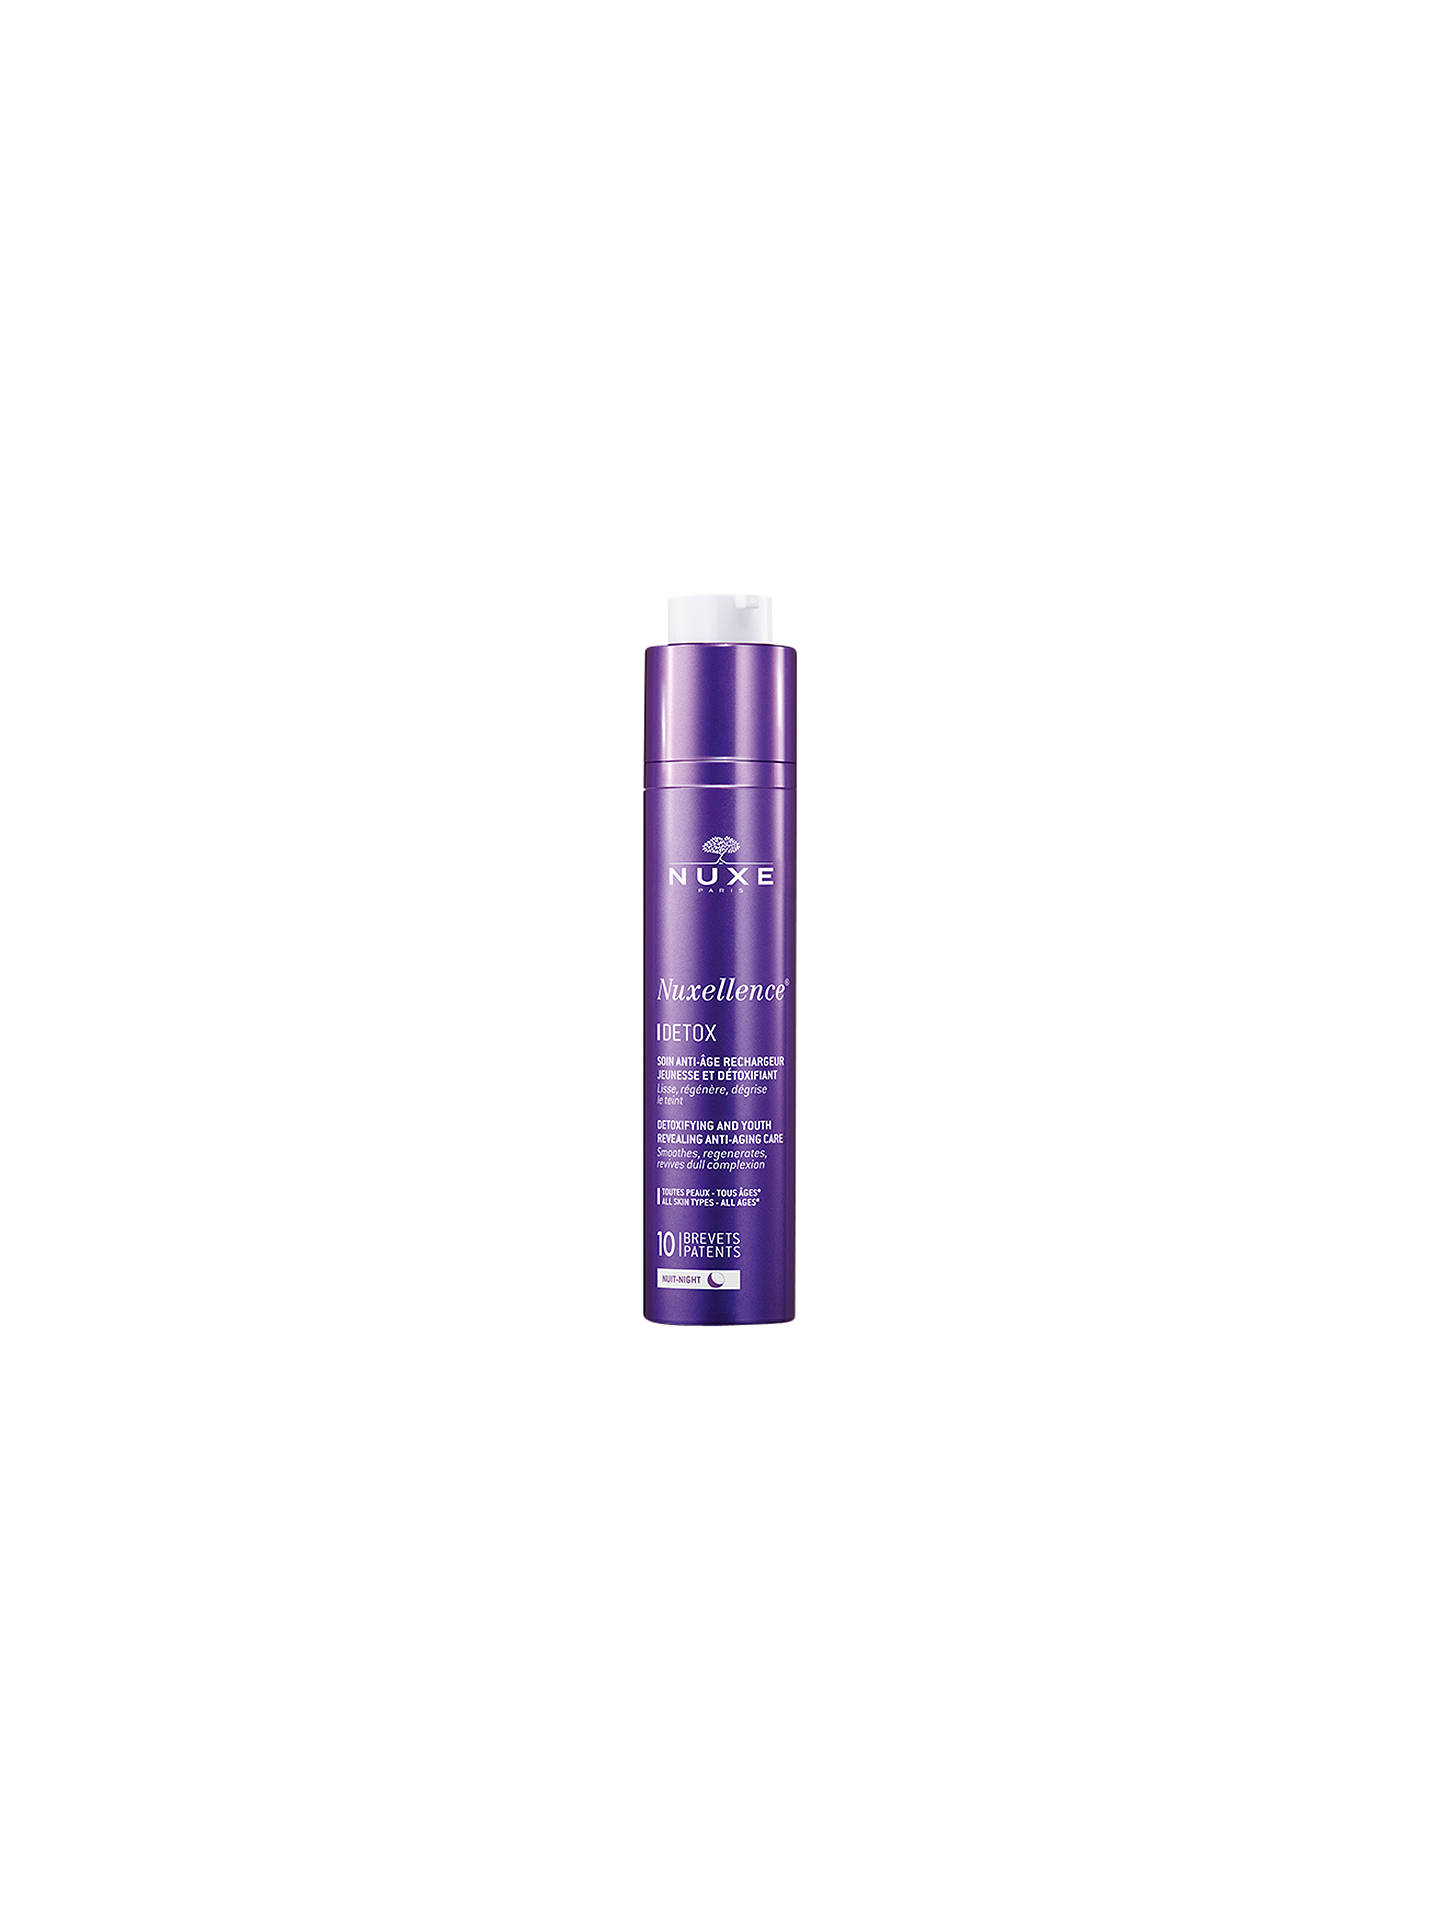 BuyNUXE Nuxellence® Detox Detoxifying and Anti-Ageing Night Care, 50ml Online at johnlewis.com